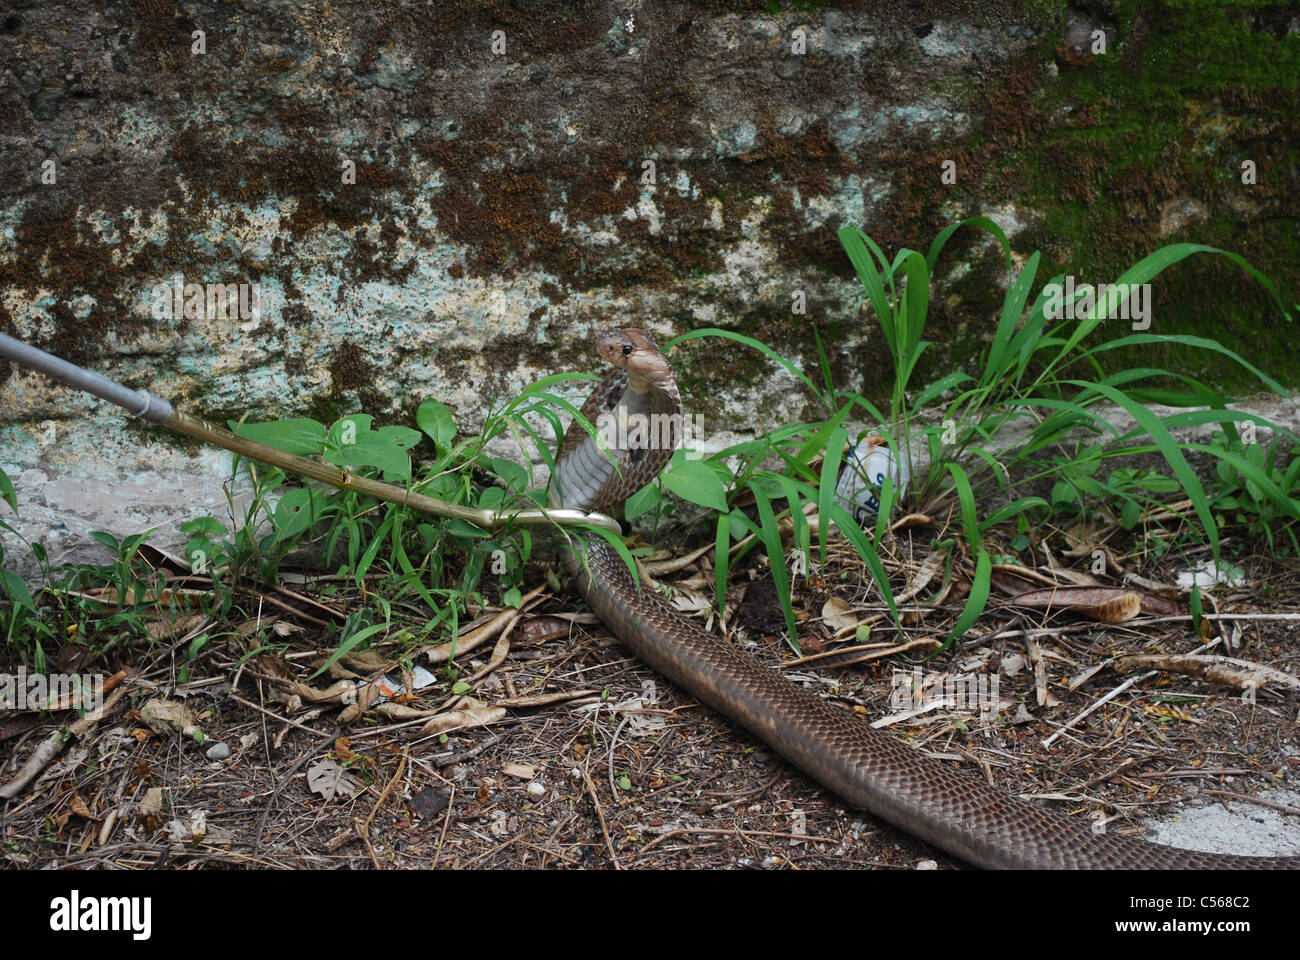 indian spectacled cobra close-up - Stock Image